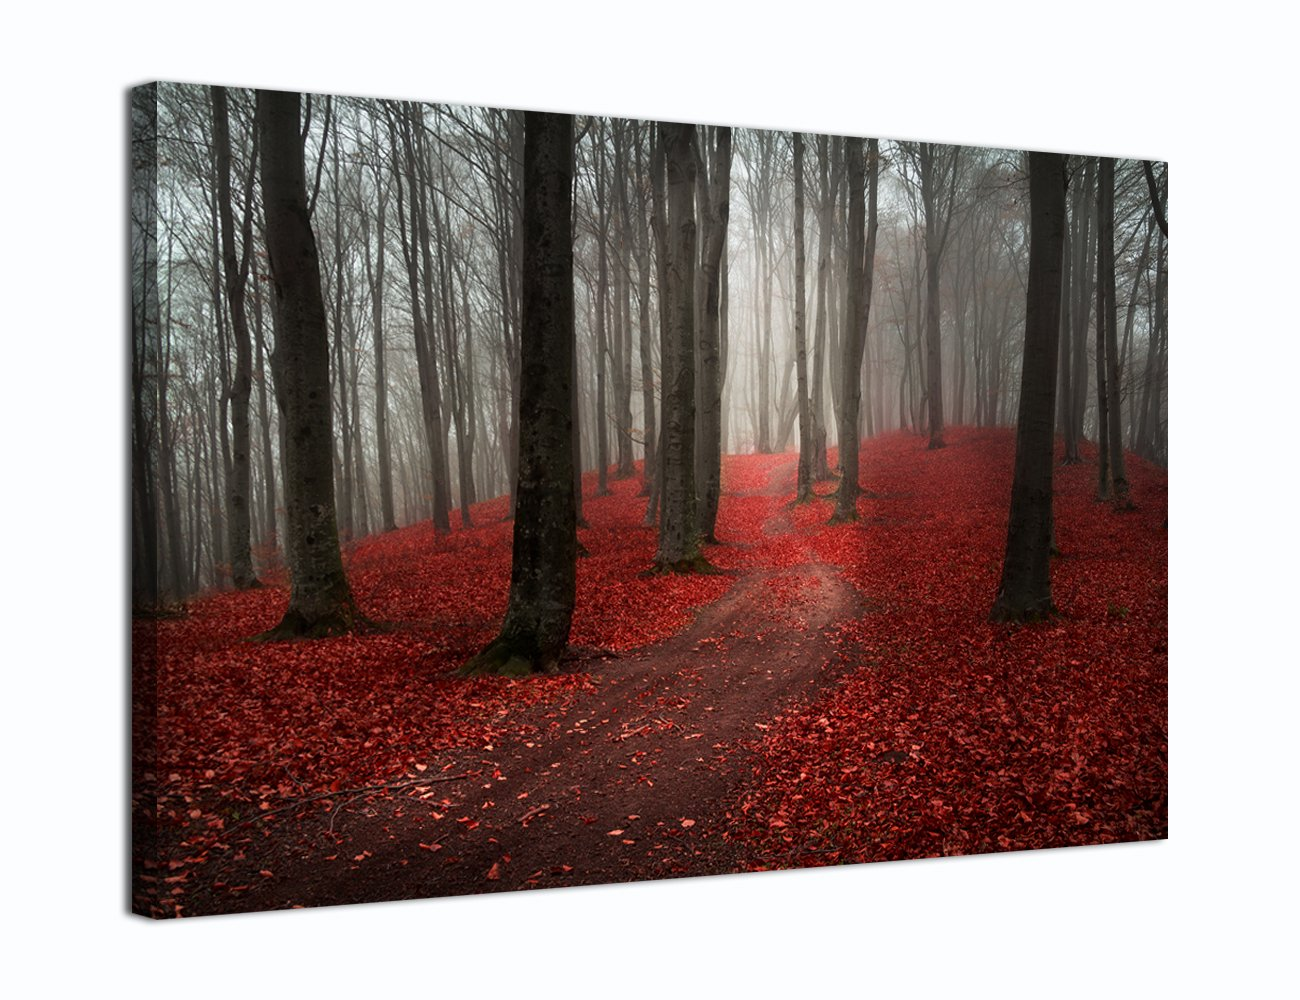 Yatsen bridge modern large tree painting black white red forest landscape canvas wall art posters and prints pictures for living room stretched ready to